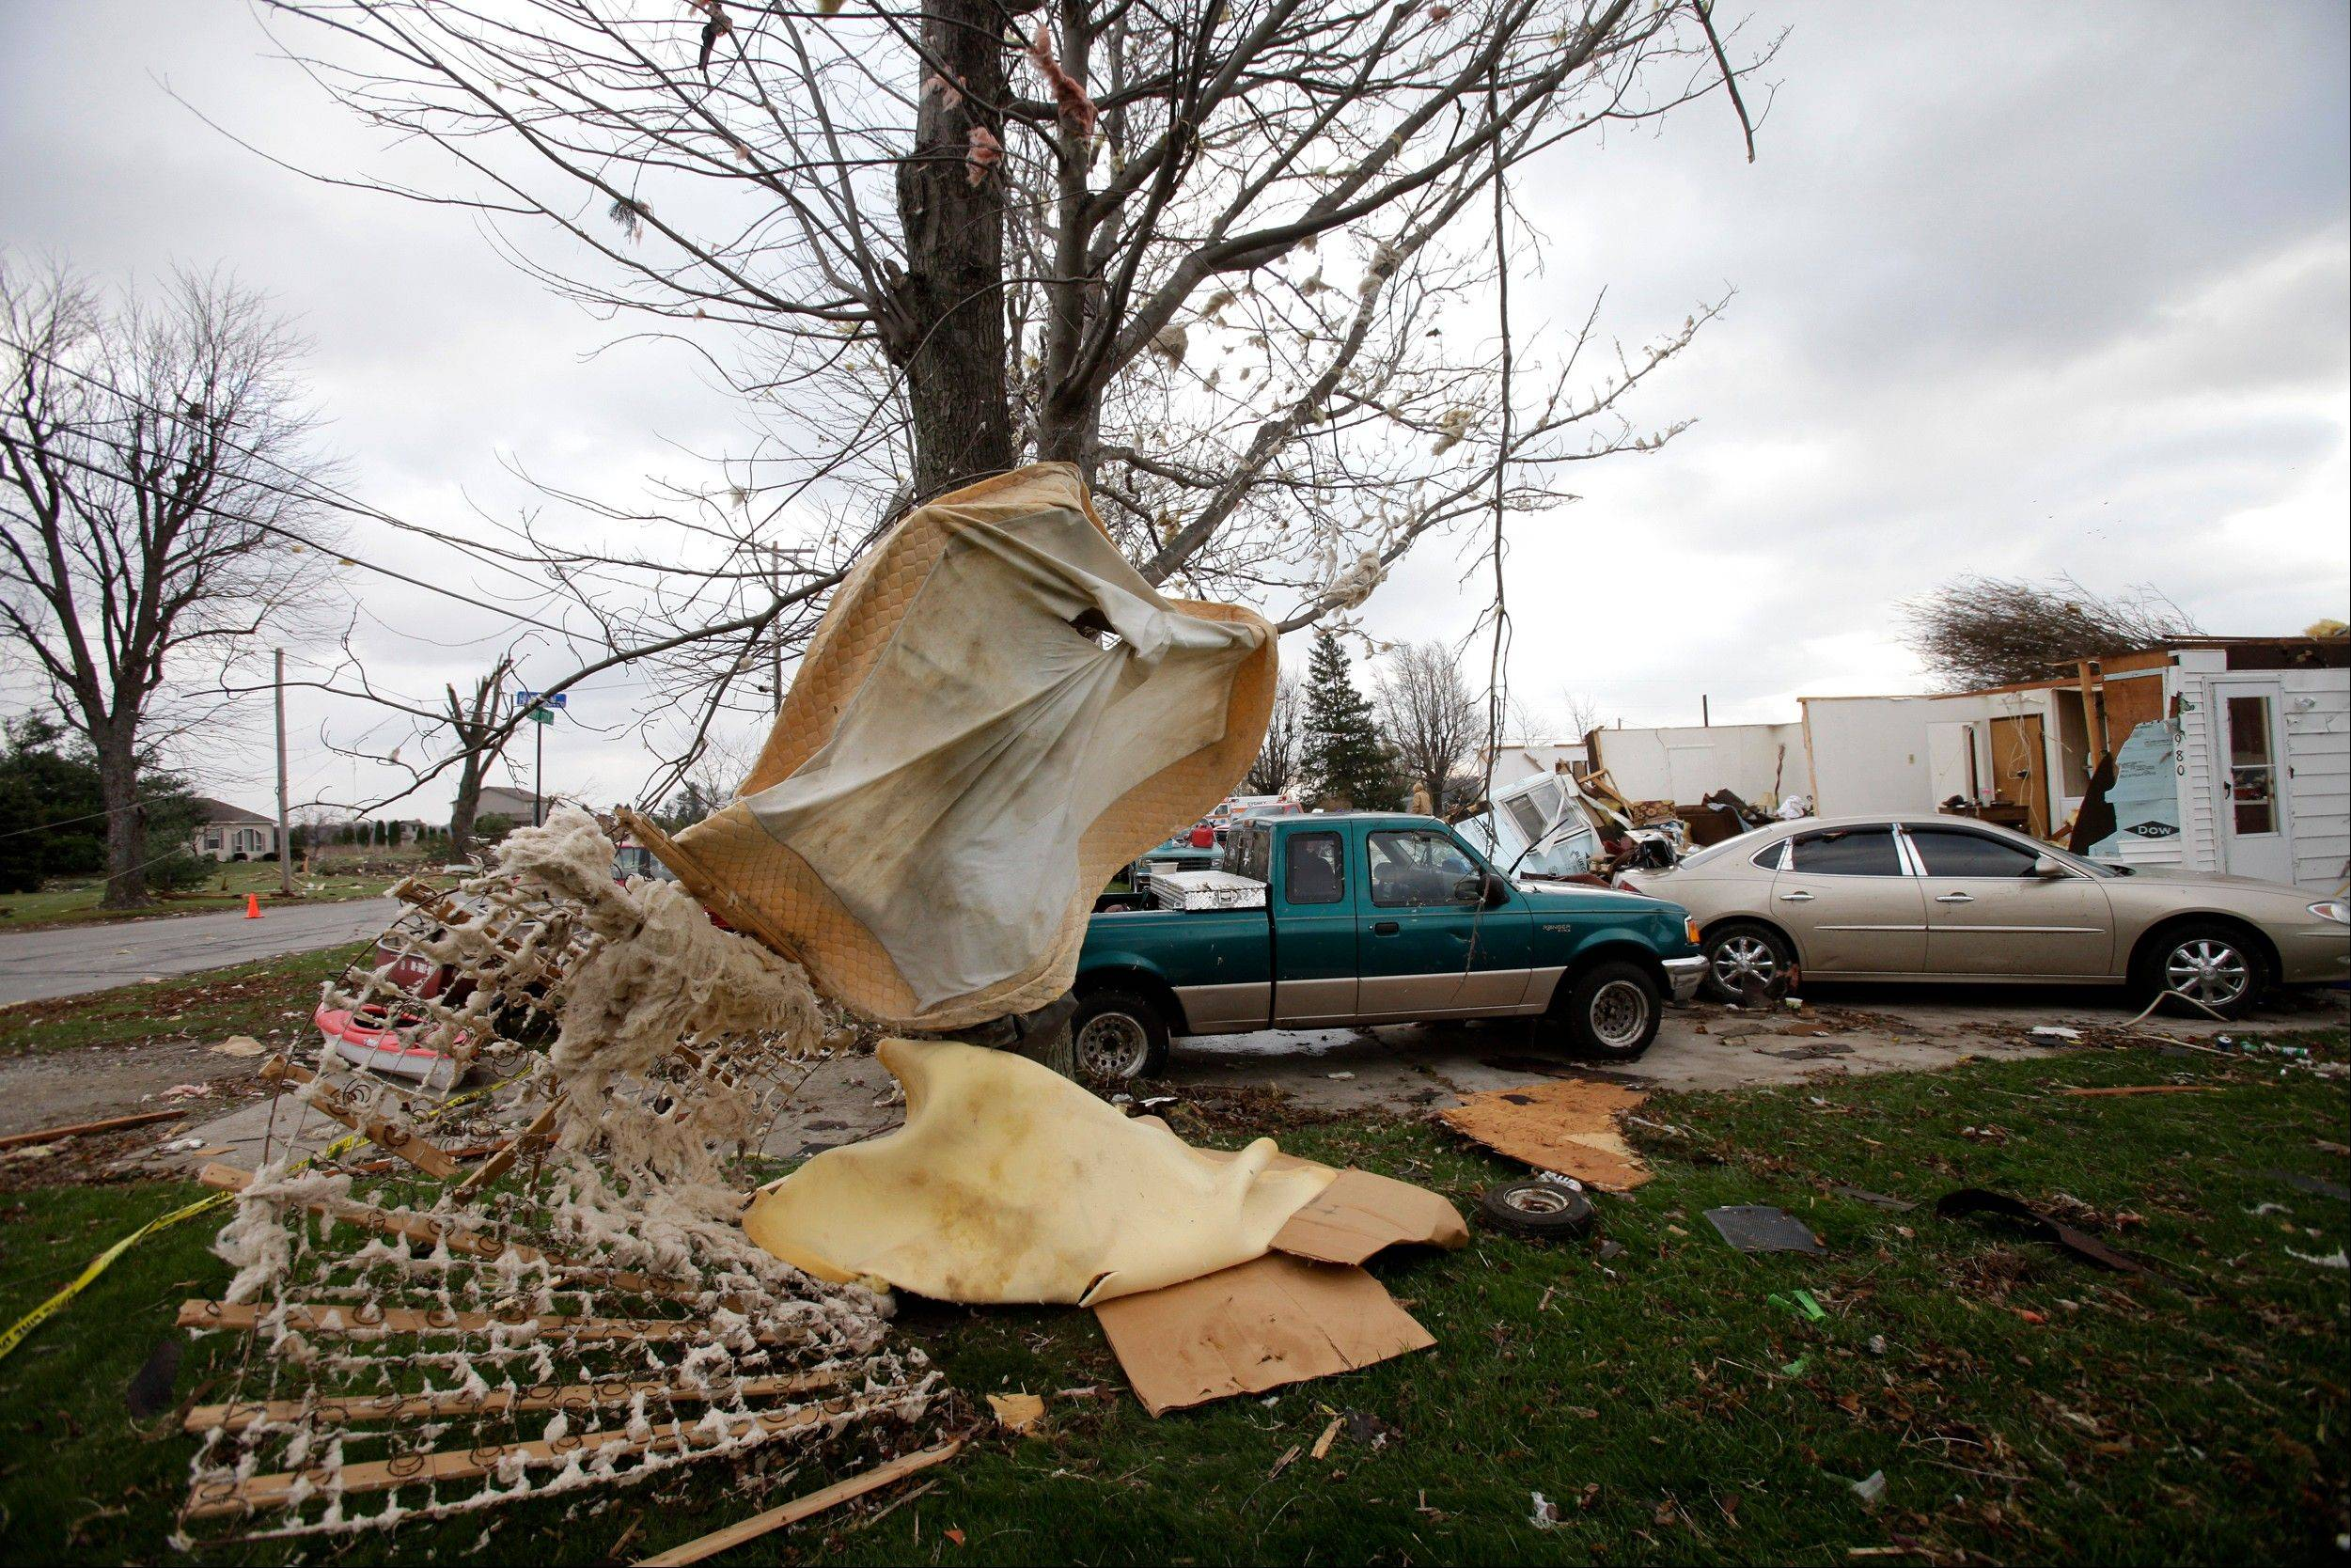 A bed mattress is seen wrapped around a tree, Monday, Nov. 18, 2013, after strong winds destroyed a home in Jerry City, Ohio. Dozens of tornadoes and intense thunderstorms swept across the U.S. Midwest on Sunday, unleashing powerful winds that flattened entire neighborhoods, flipped over cars and uprooted trees.